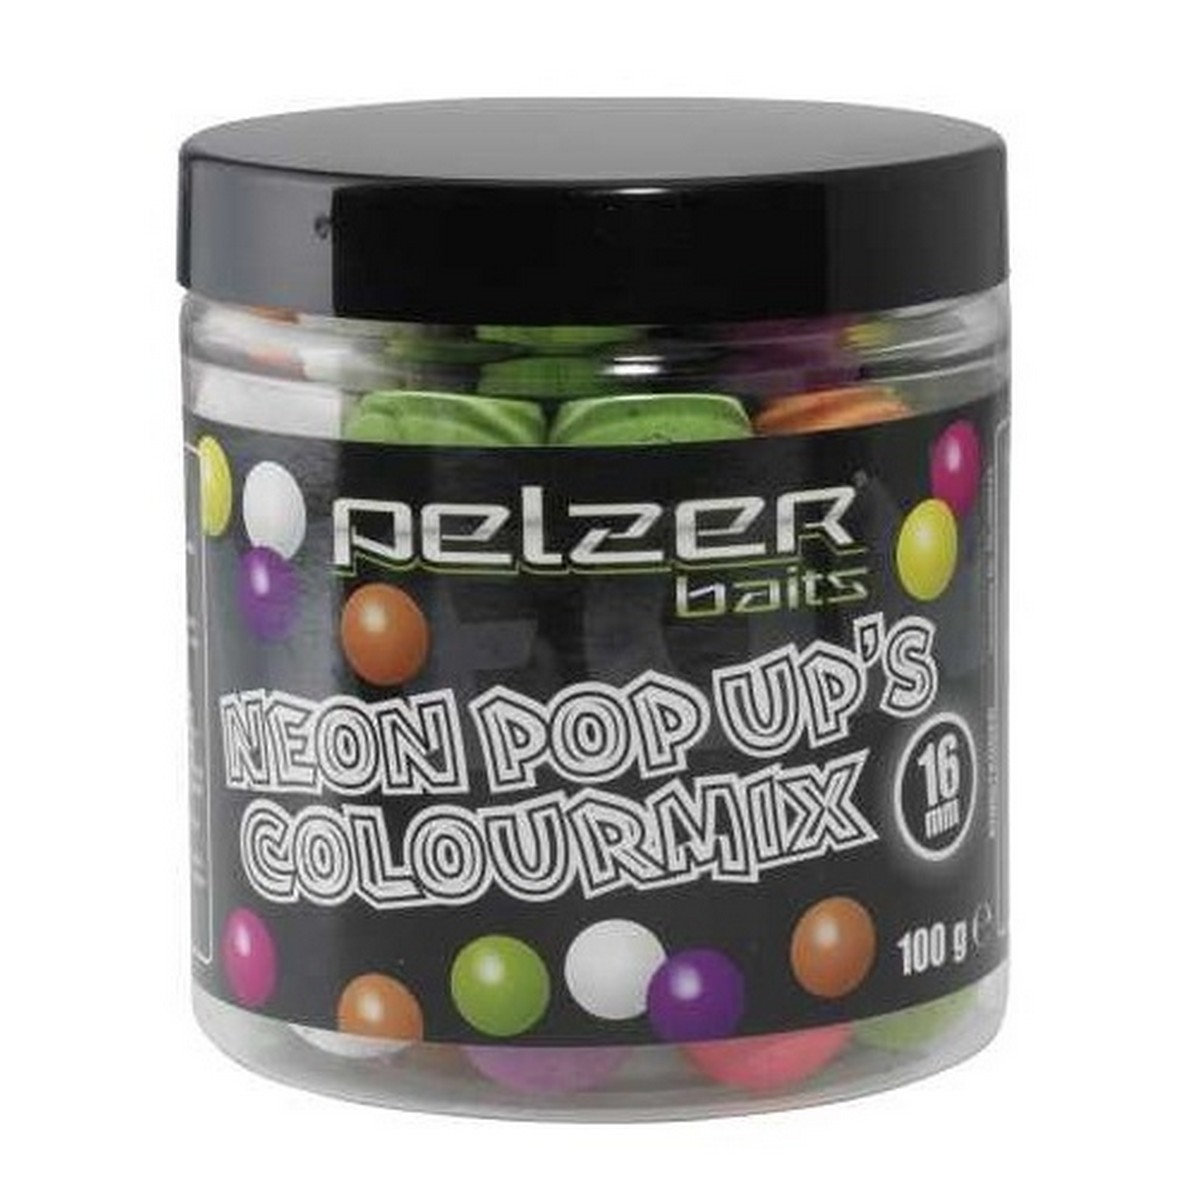 Pelzer Neon Pop Up ColourMix 16mm